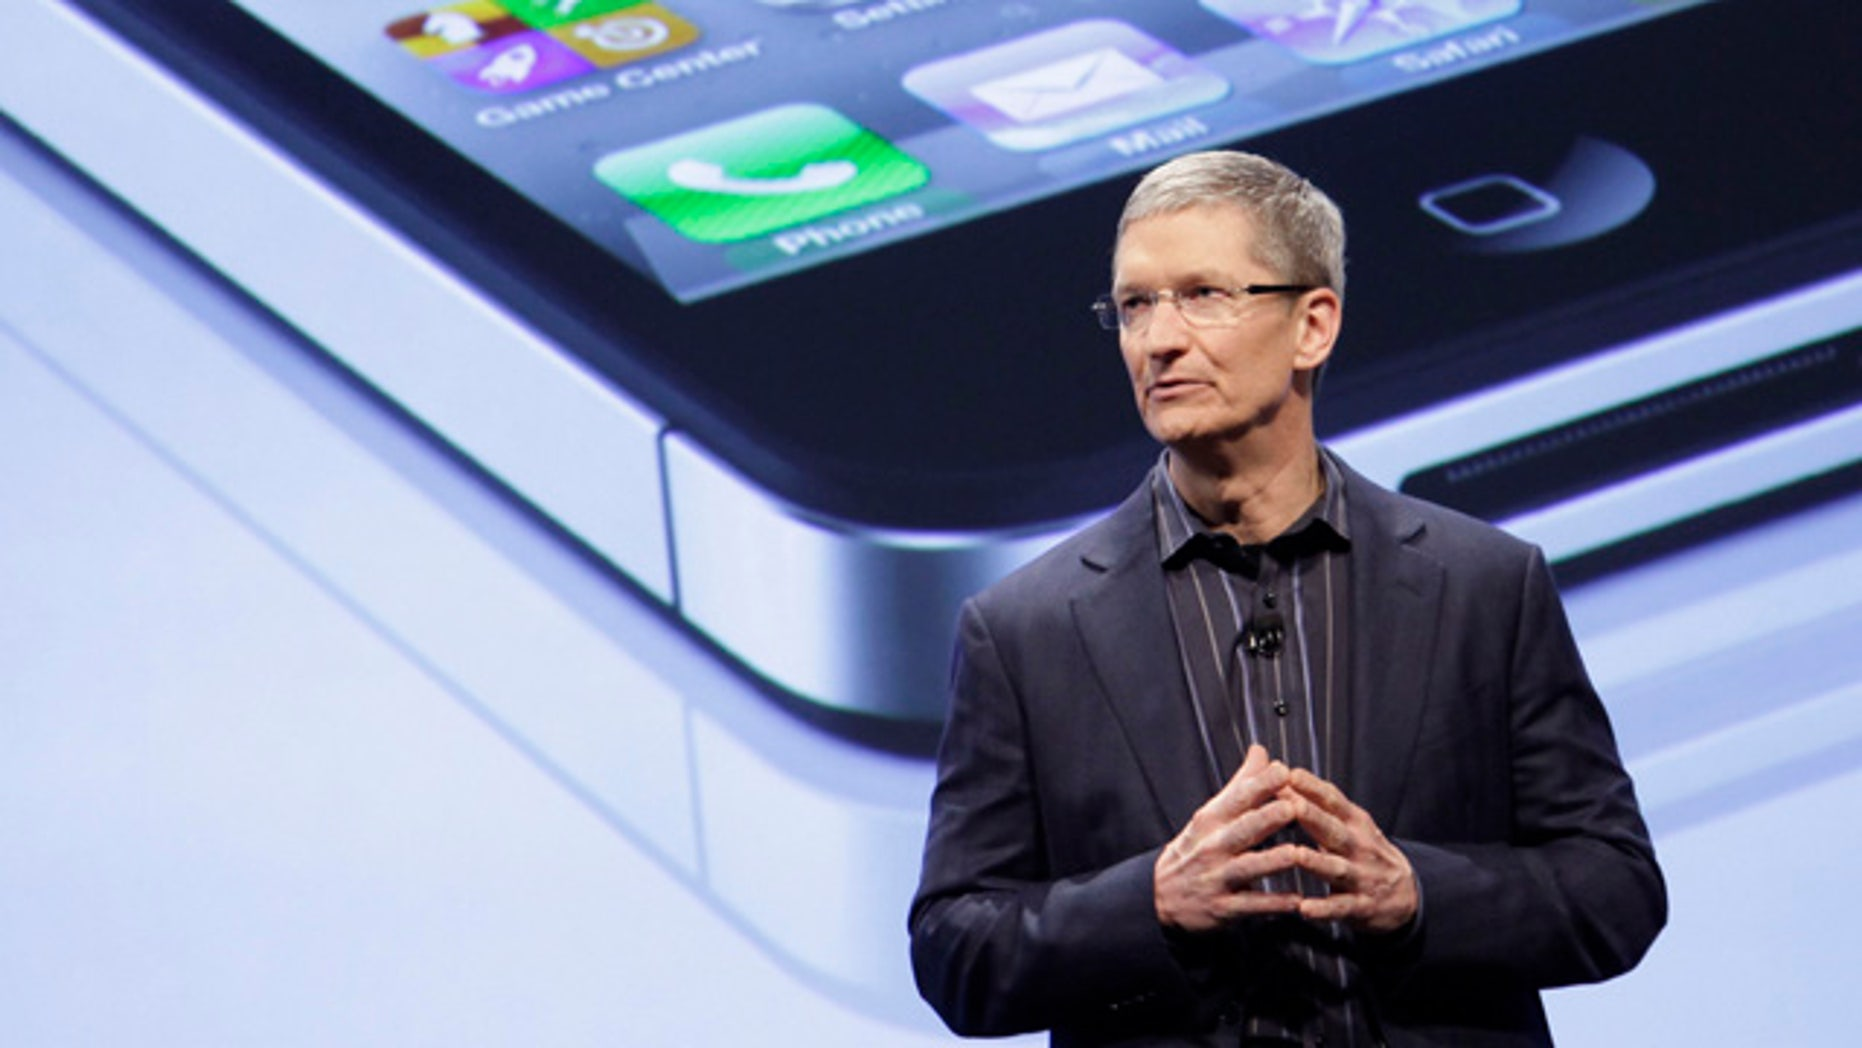 Apple CEO Tim Cook has big shoes to fill.